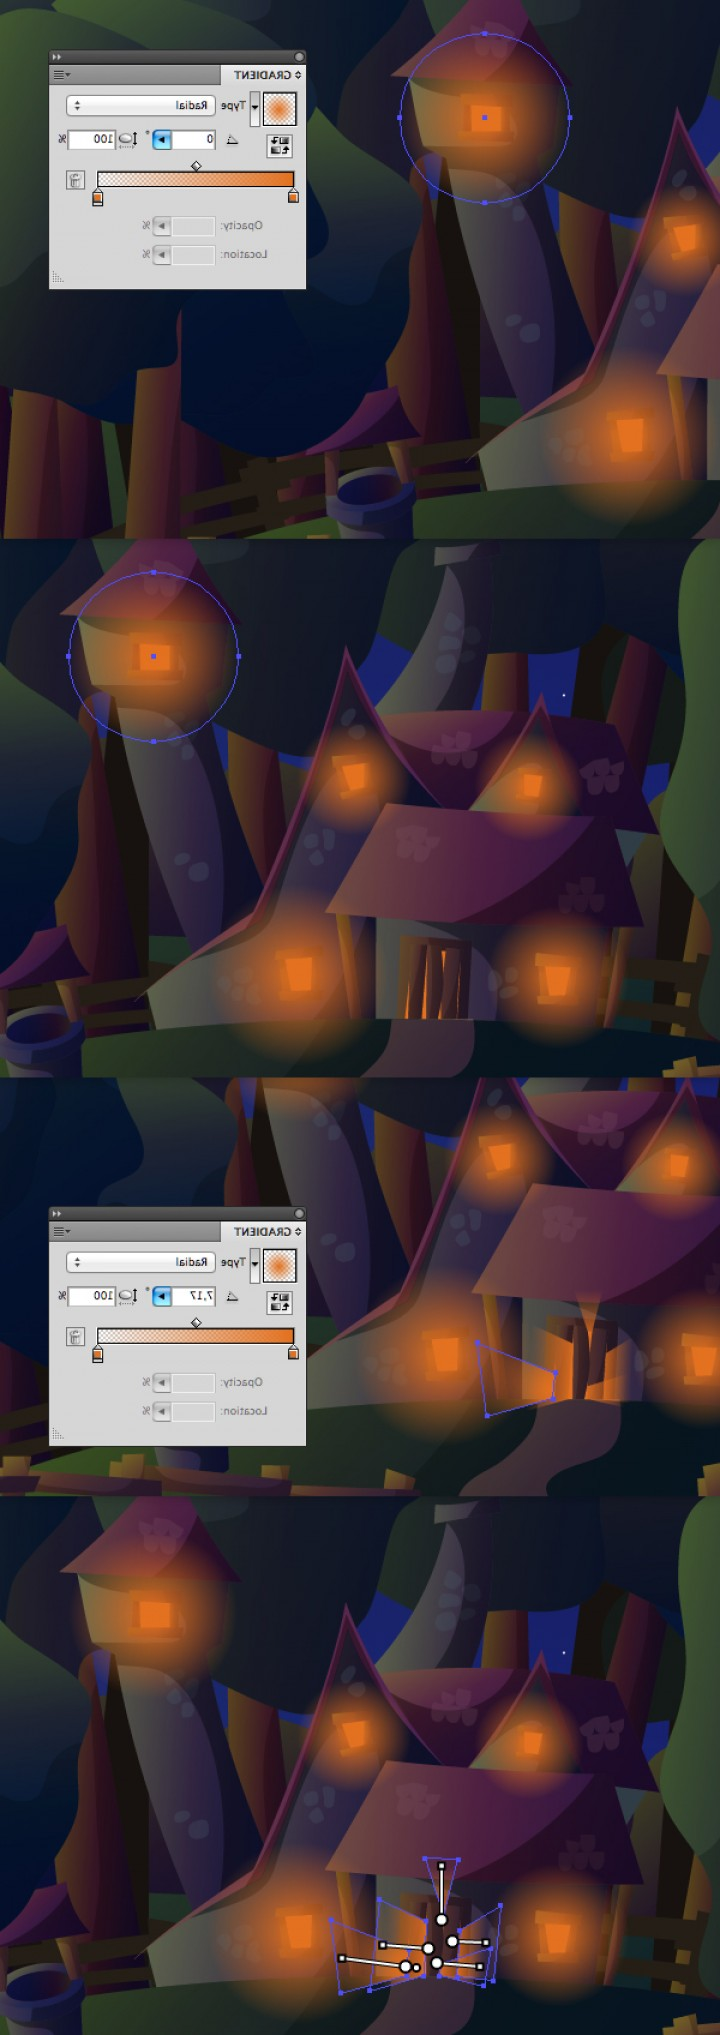 Vector Tut's Blends: How To Create A Witchs House Scene With Gradients In Illustrator Vector